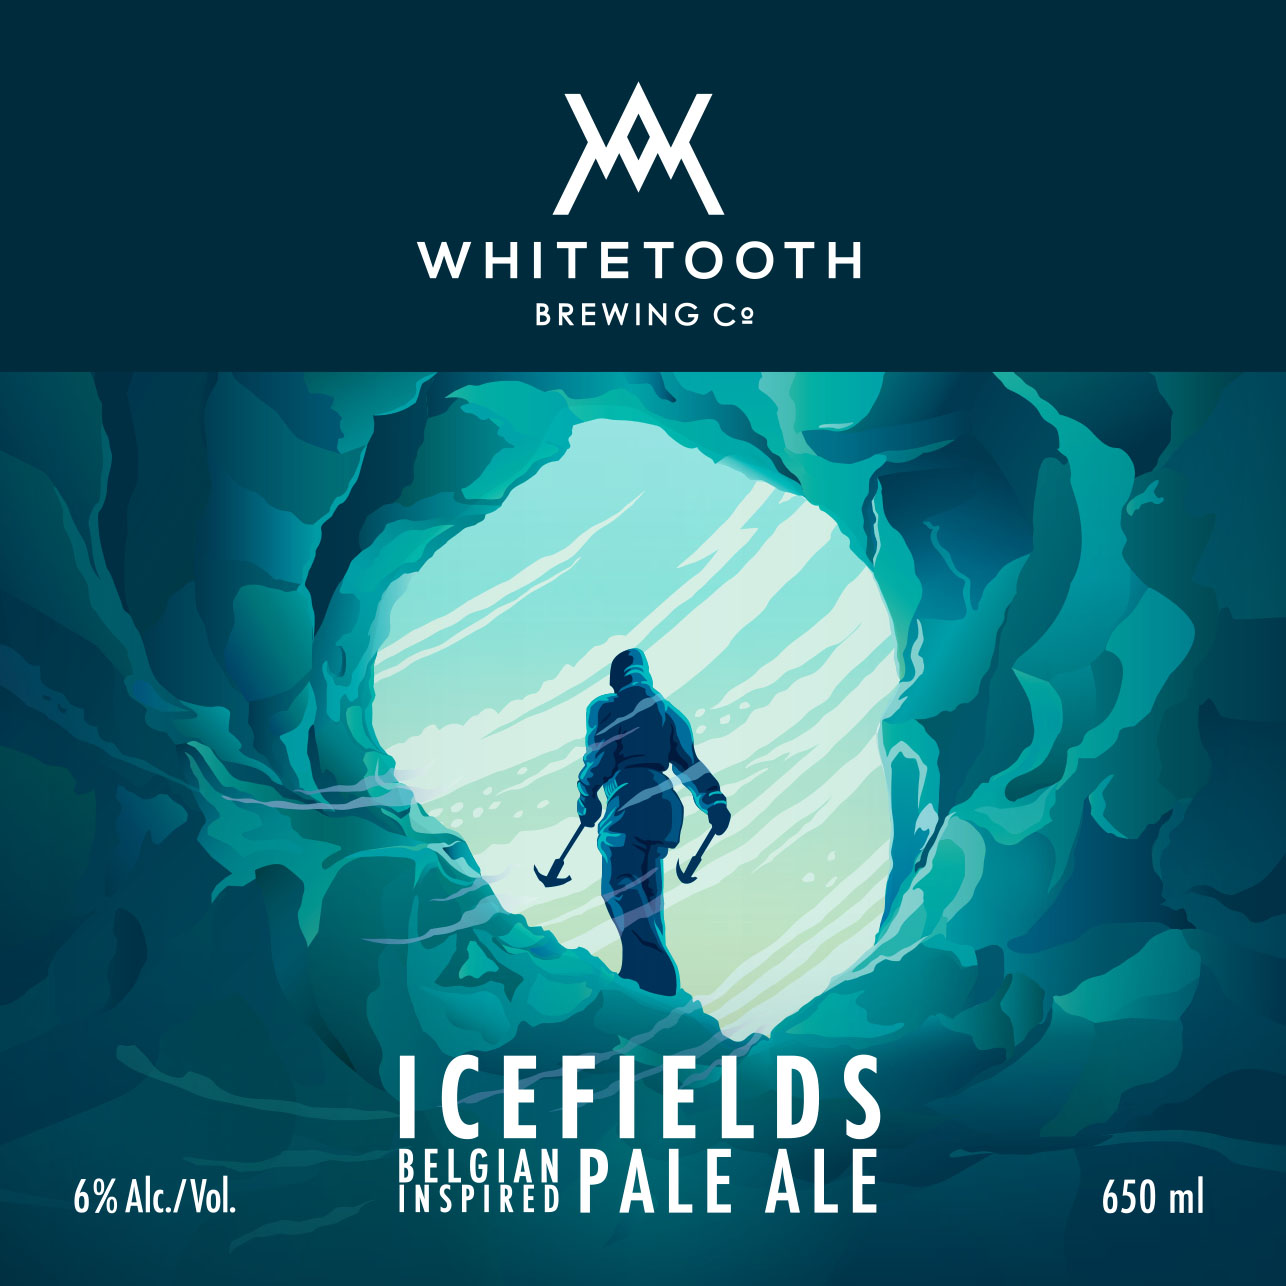 Untitled-1_0004_WhiteTooth-Icefields-Pale-Ale-PREP.jpg